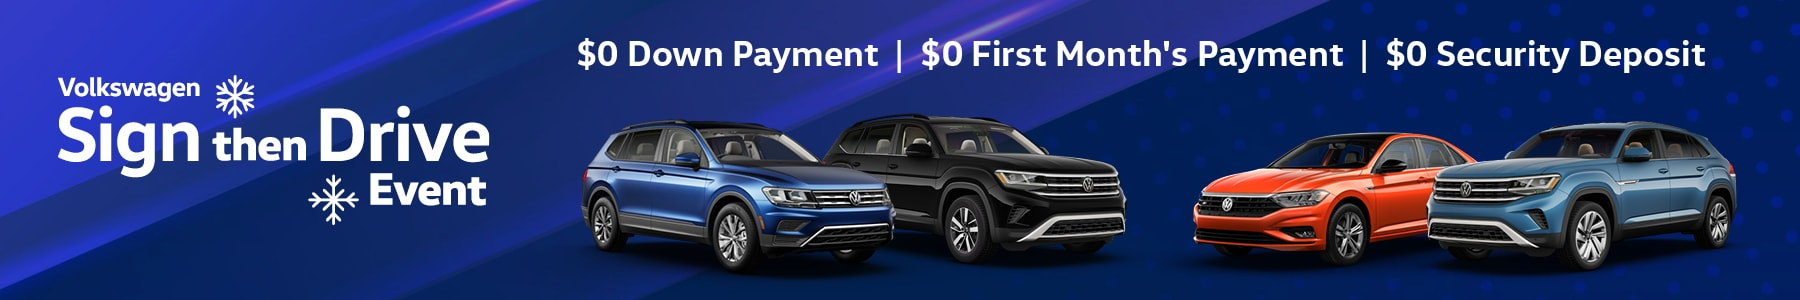 Volkswagen Sign the Drive Event. $0 Down payment, $0 first month's payment, $0 security deposit.